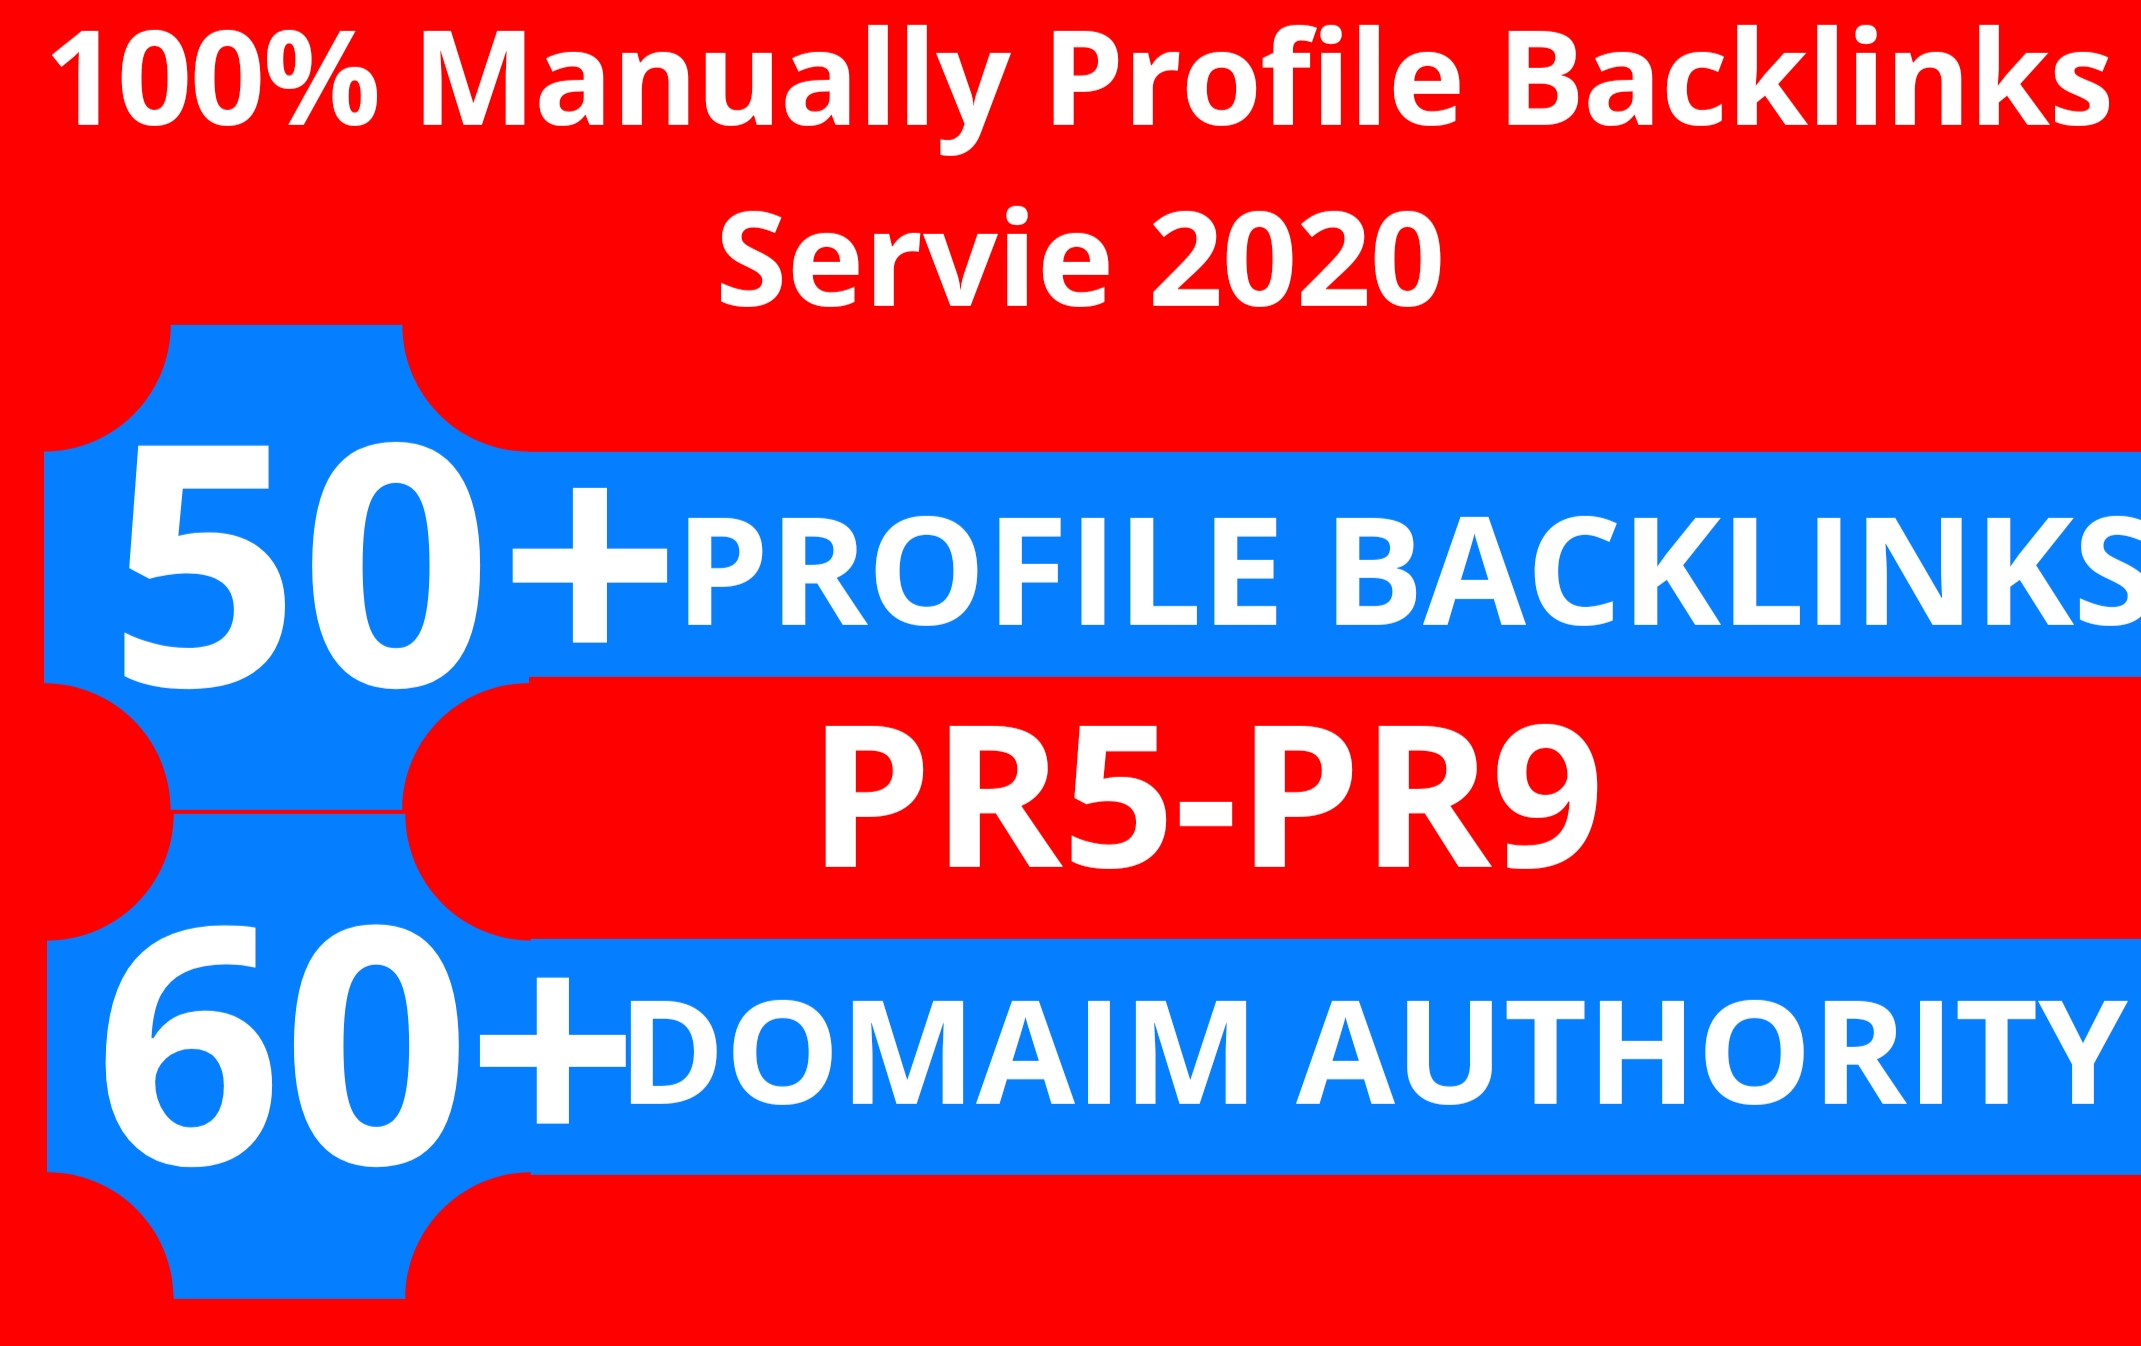 Manually Profile Backlinks Service DA 60+ PR5-PR9 Skyrocket Your Google Rankings